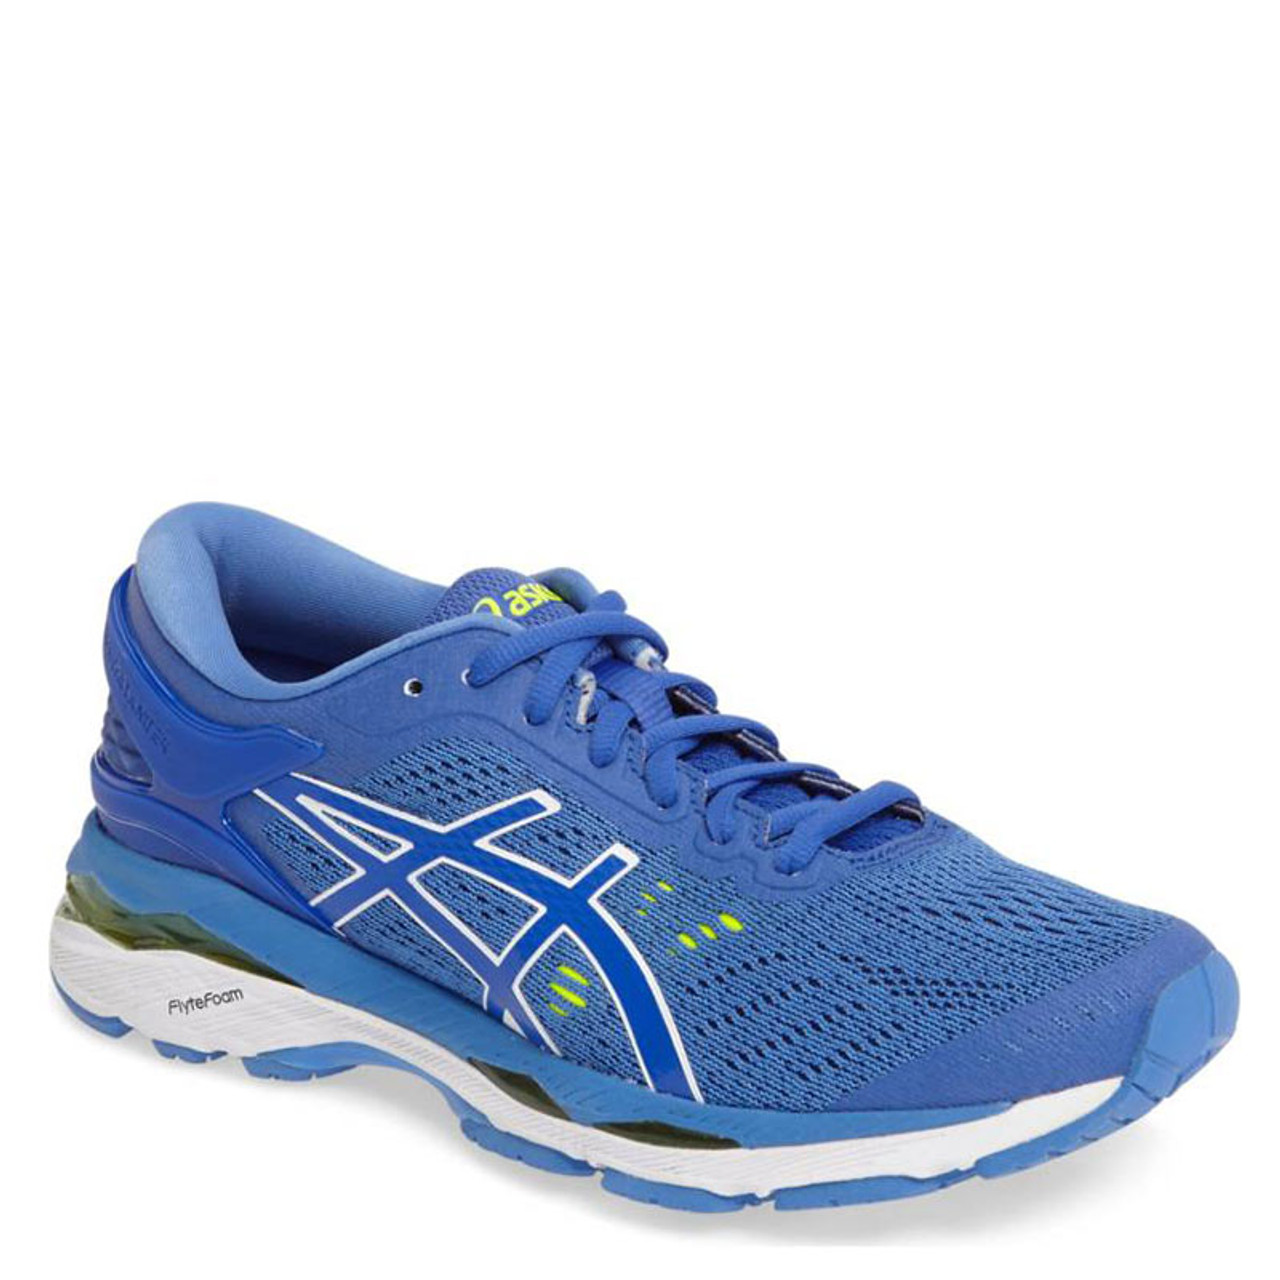 separation shoes fc02a 825b5 ASICS T7997N.4840 Women's GEL KAYANO 24 Running Shoes